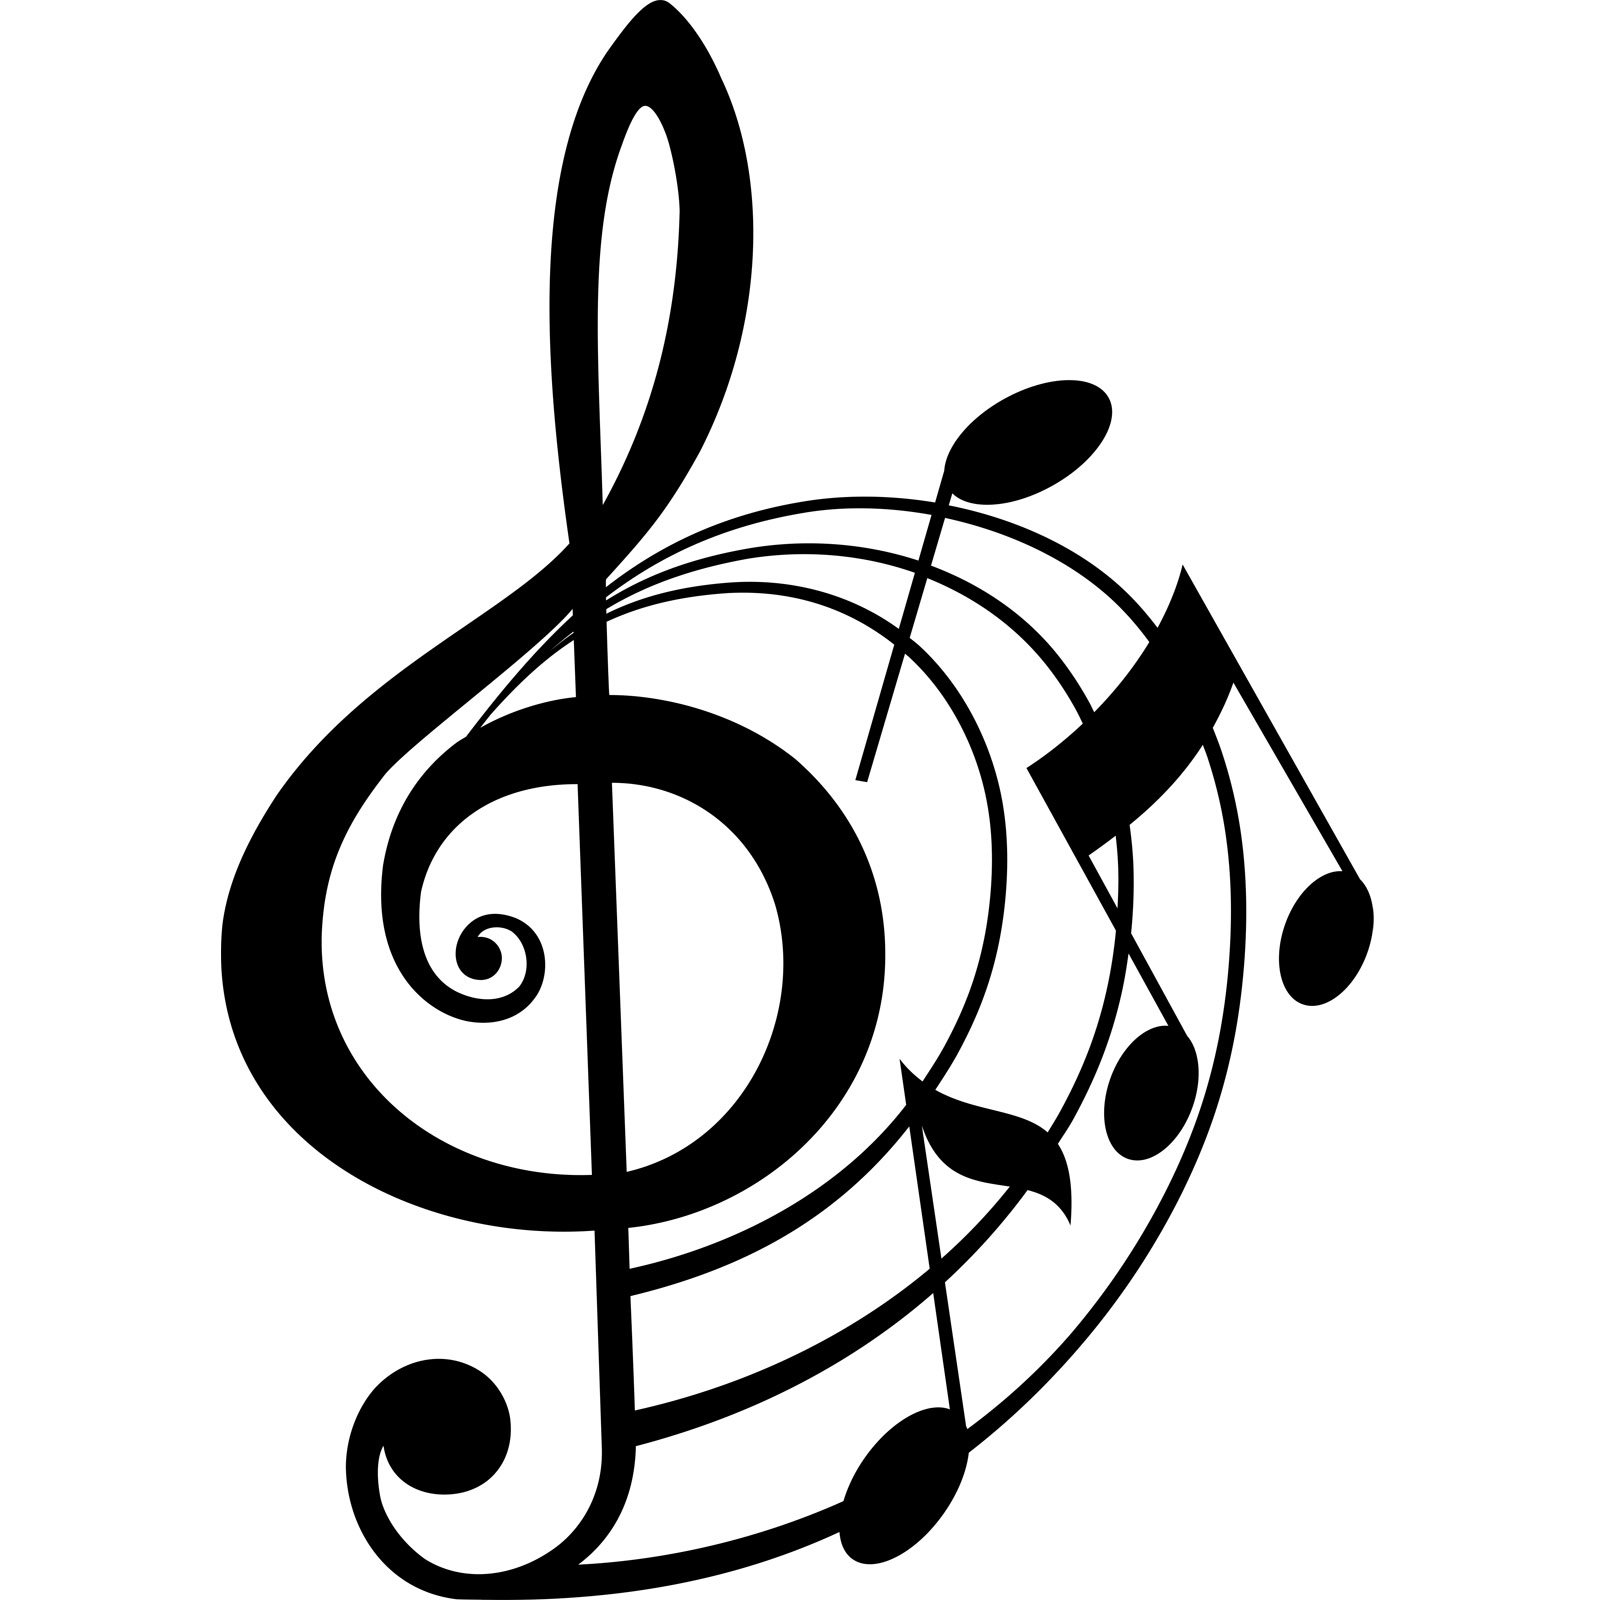 clef treble musical notes note wall sticker drawing decal outline stickers